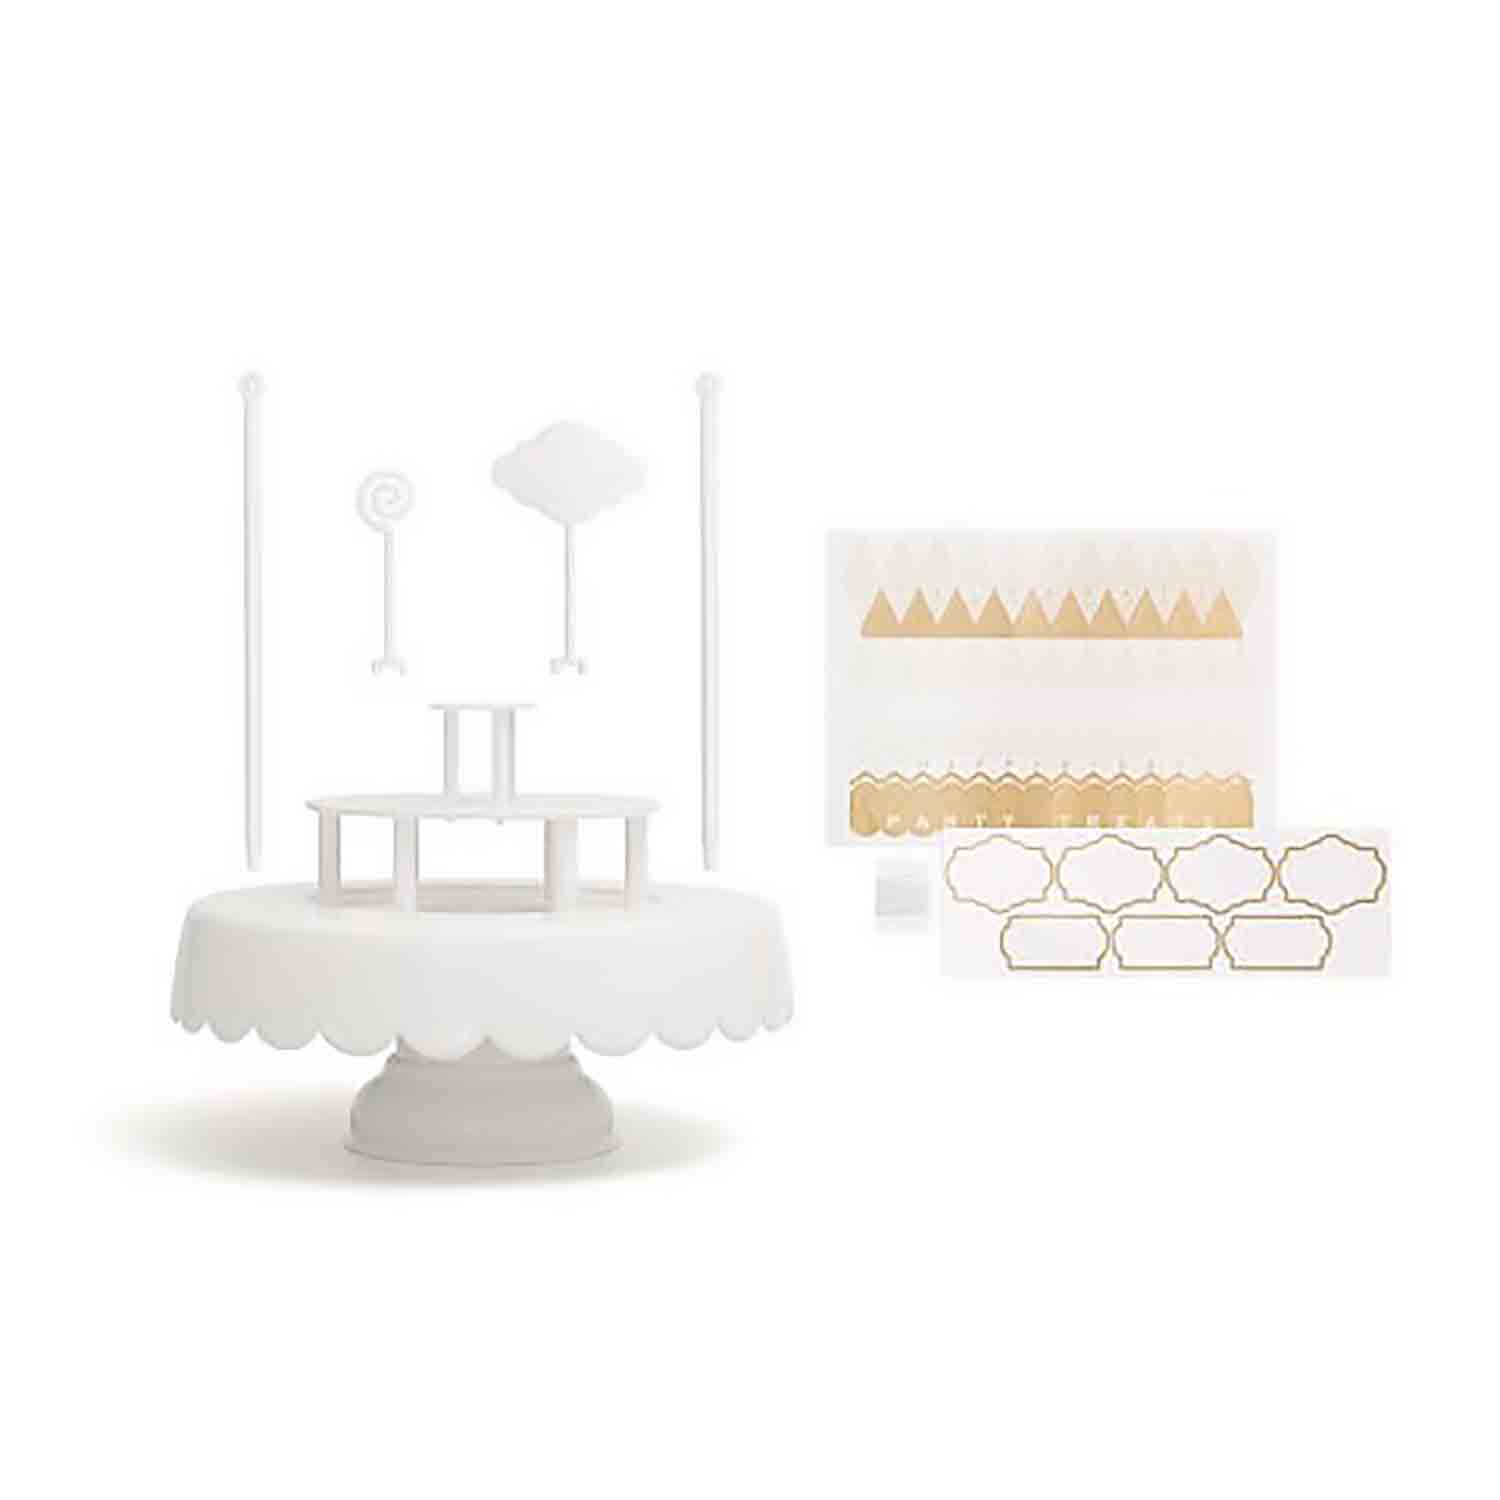 Cake Boards, Stands, and Display